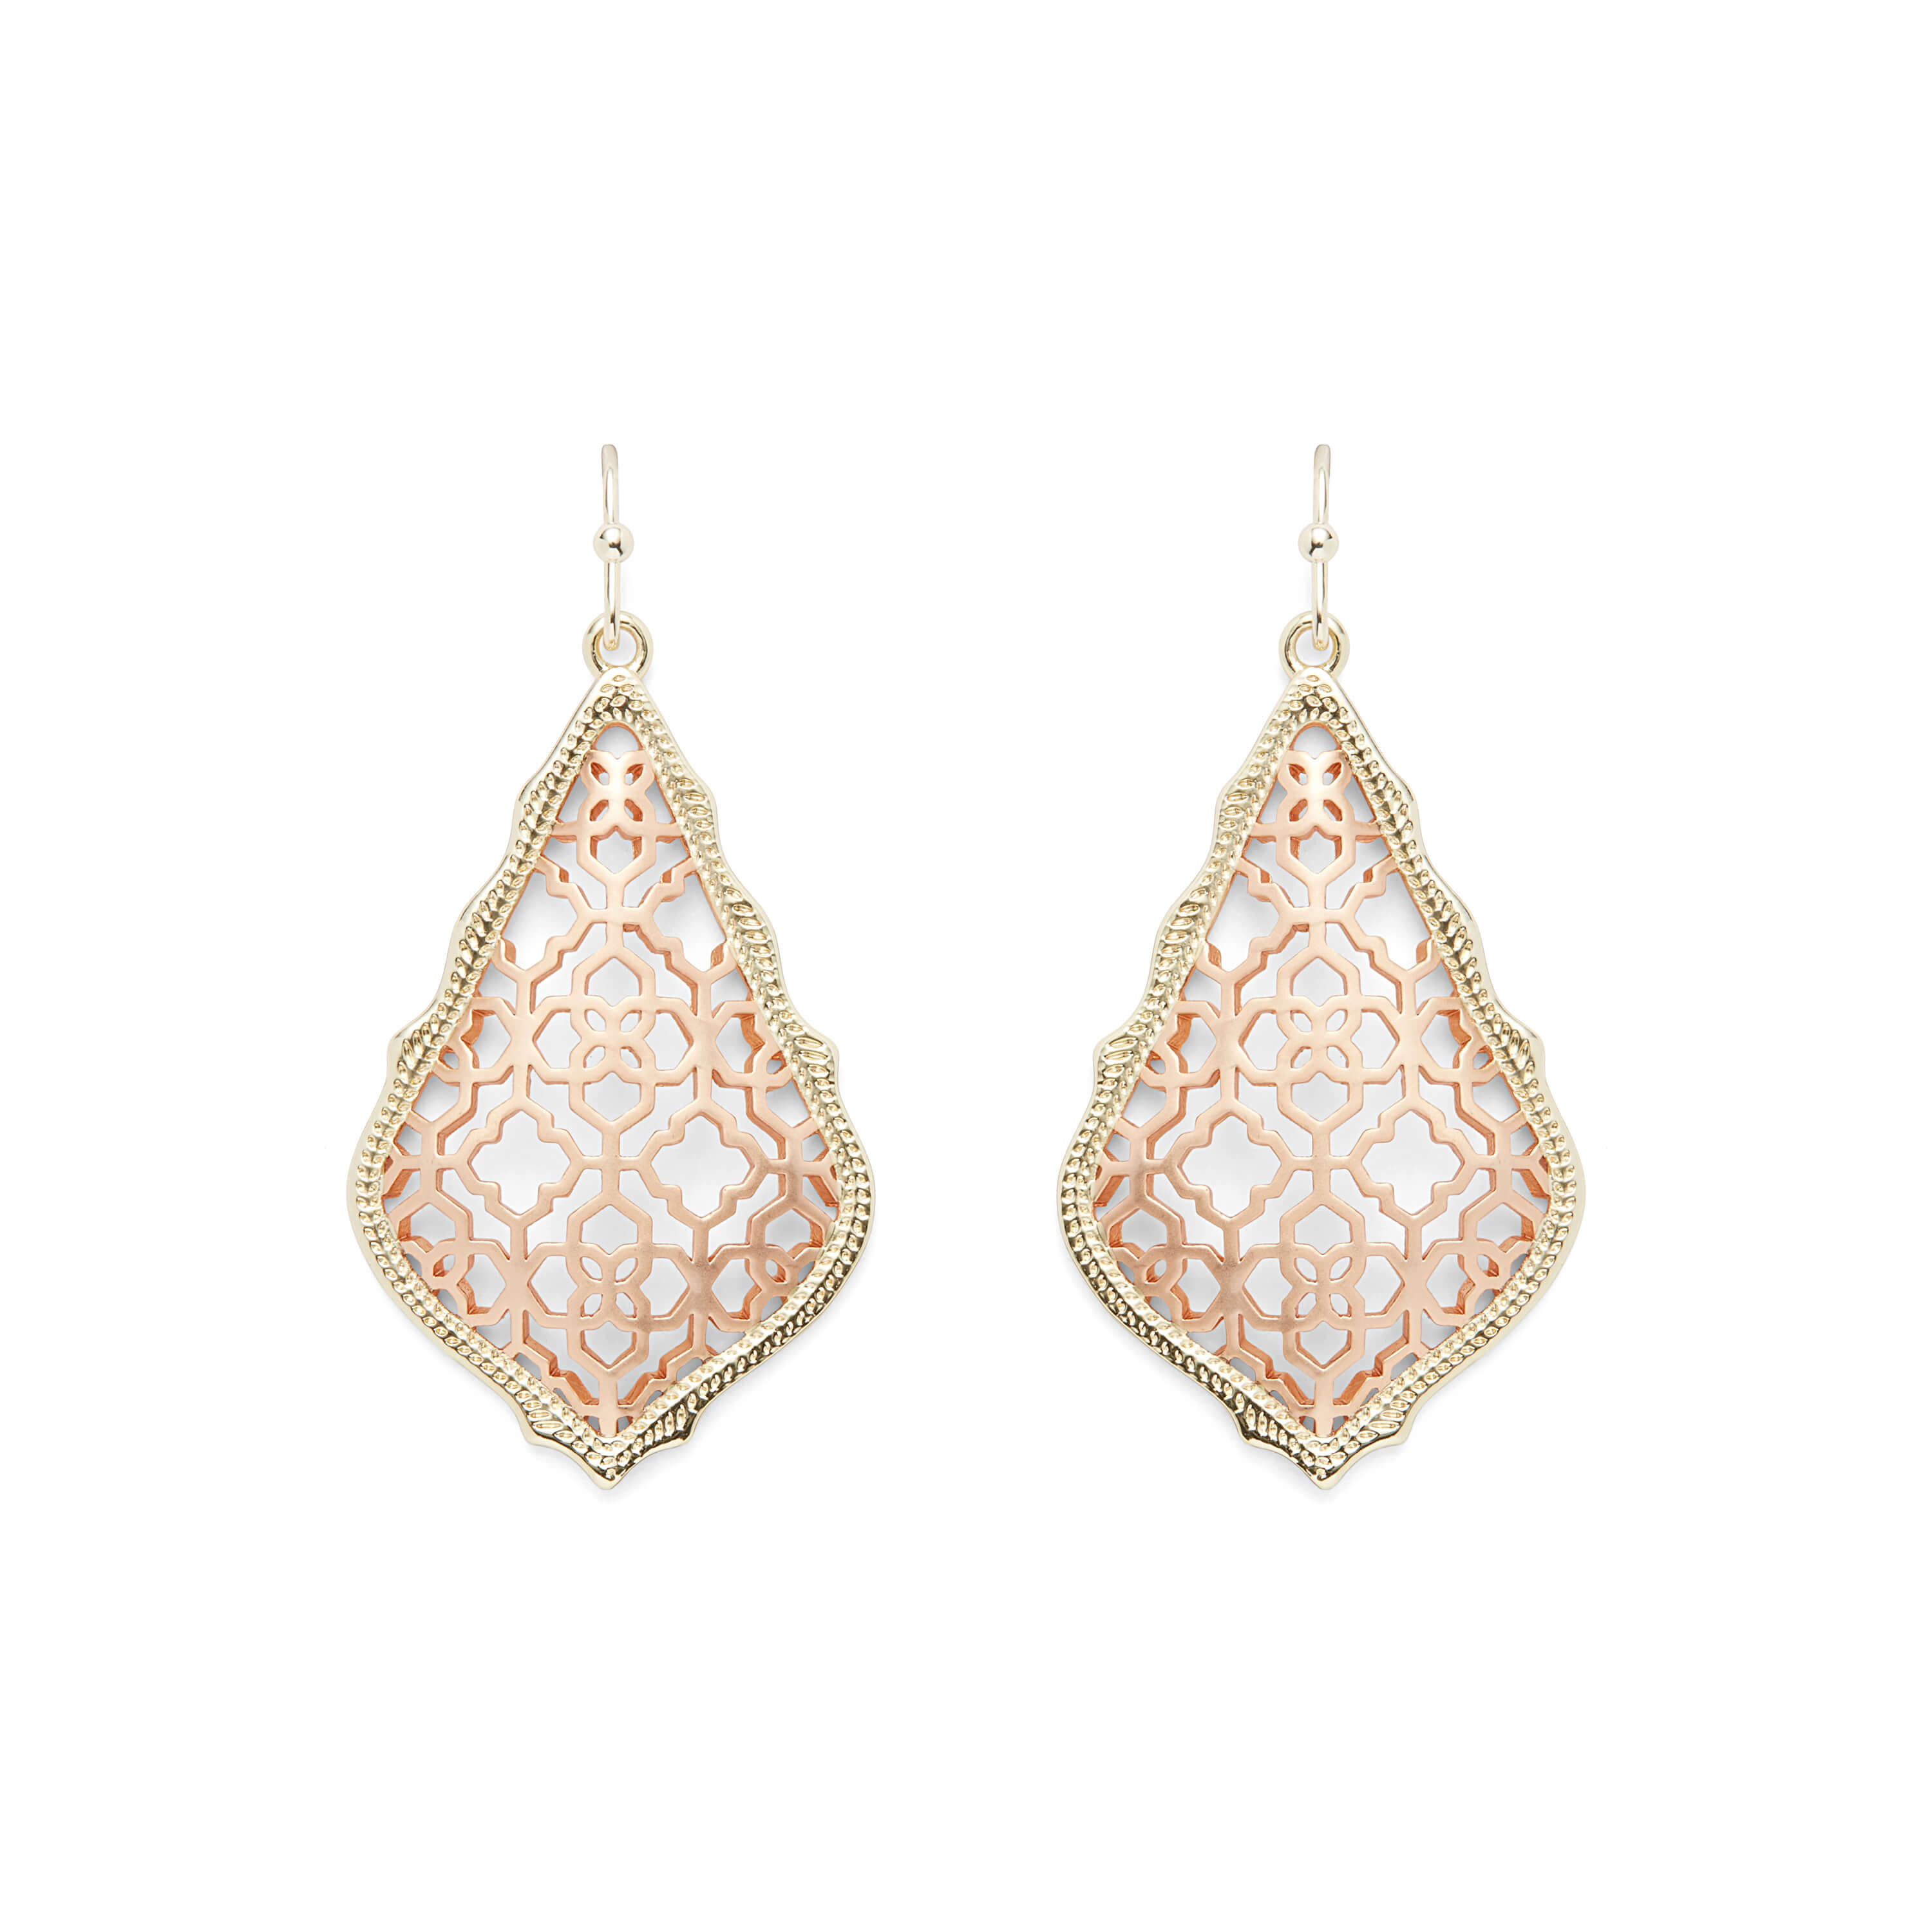 Addie Earrings in Gold and Rose Gold